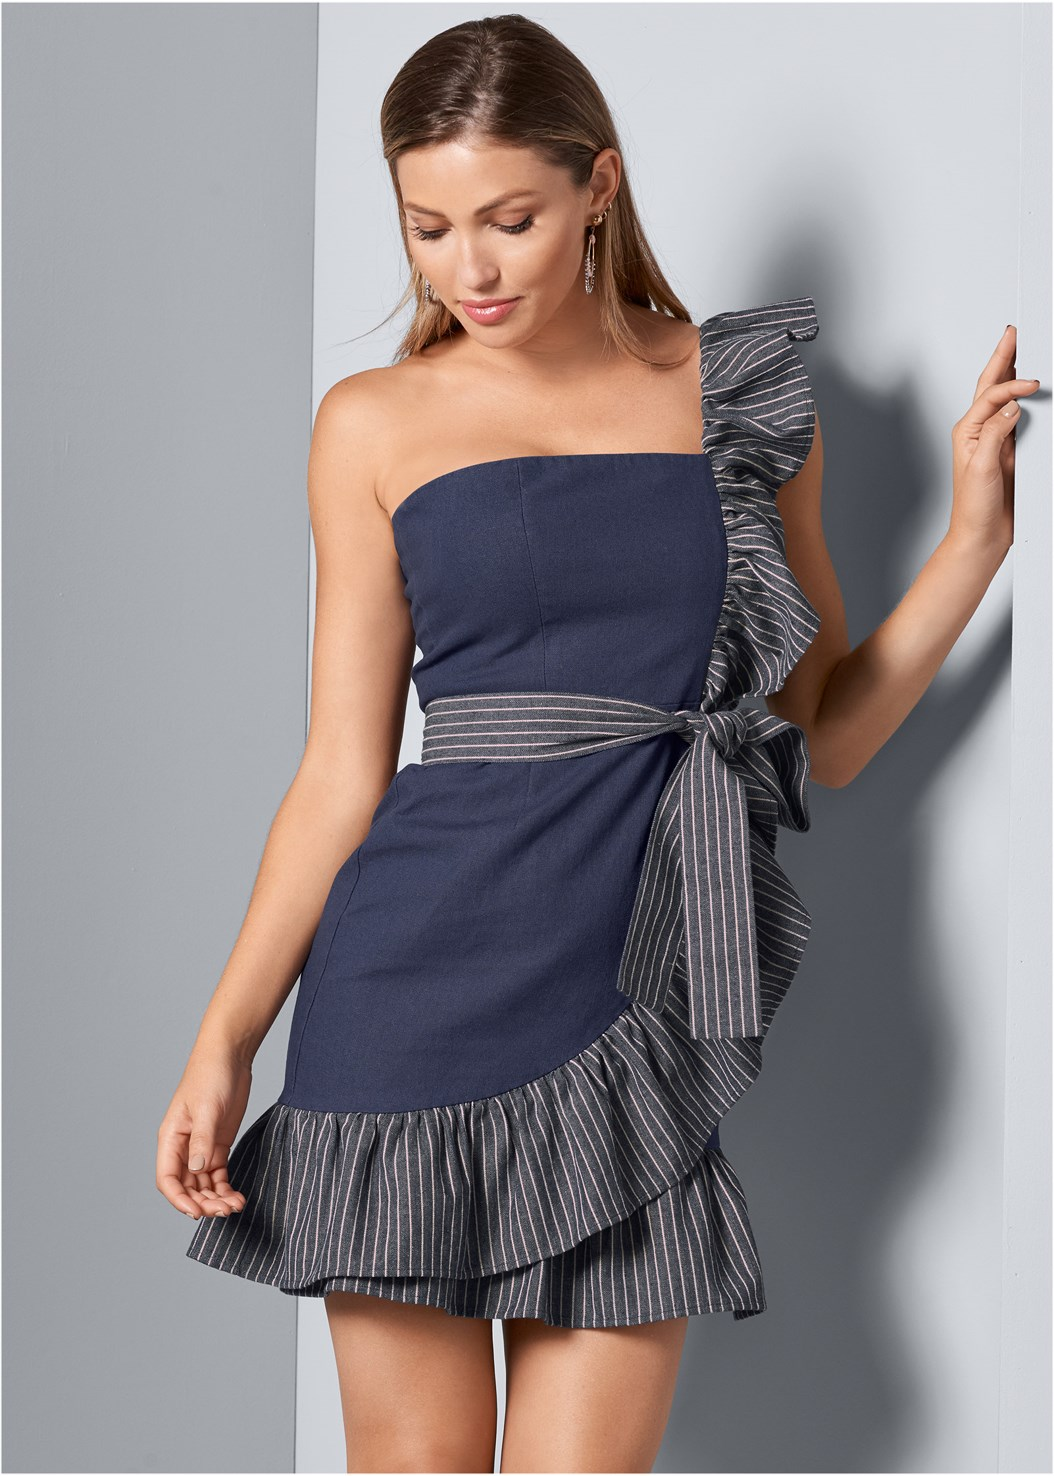 Ruffle Detail Denim Dress,Smooth Longline Push Up Bra,Beaded Hoop Earrings